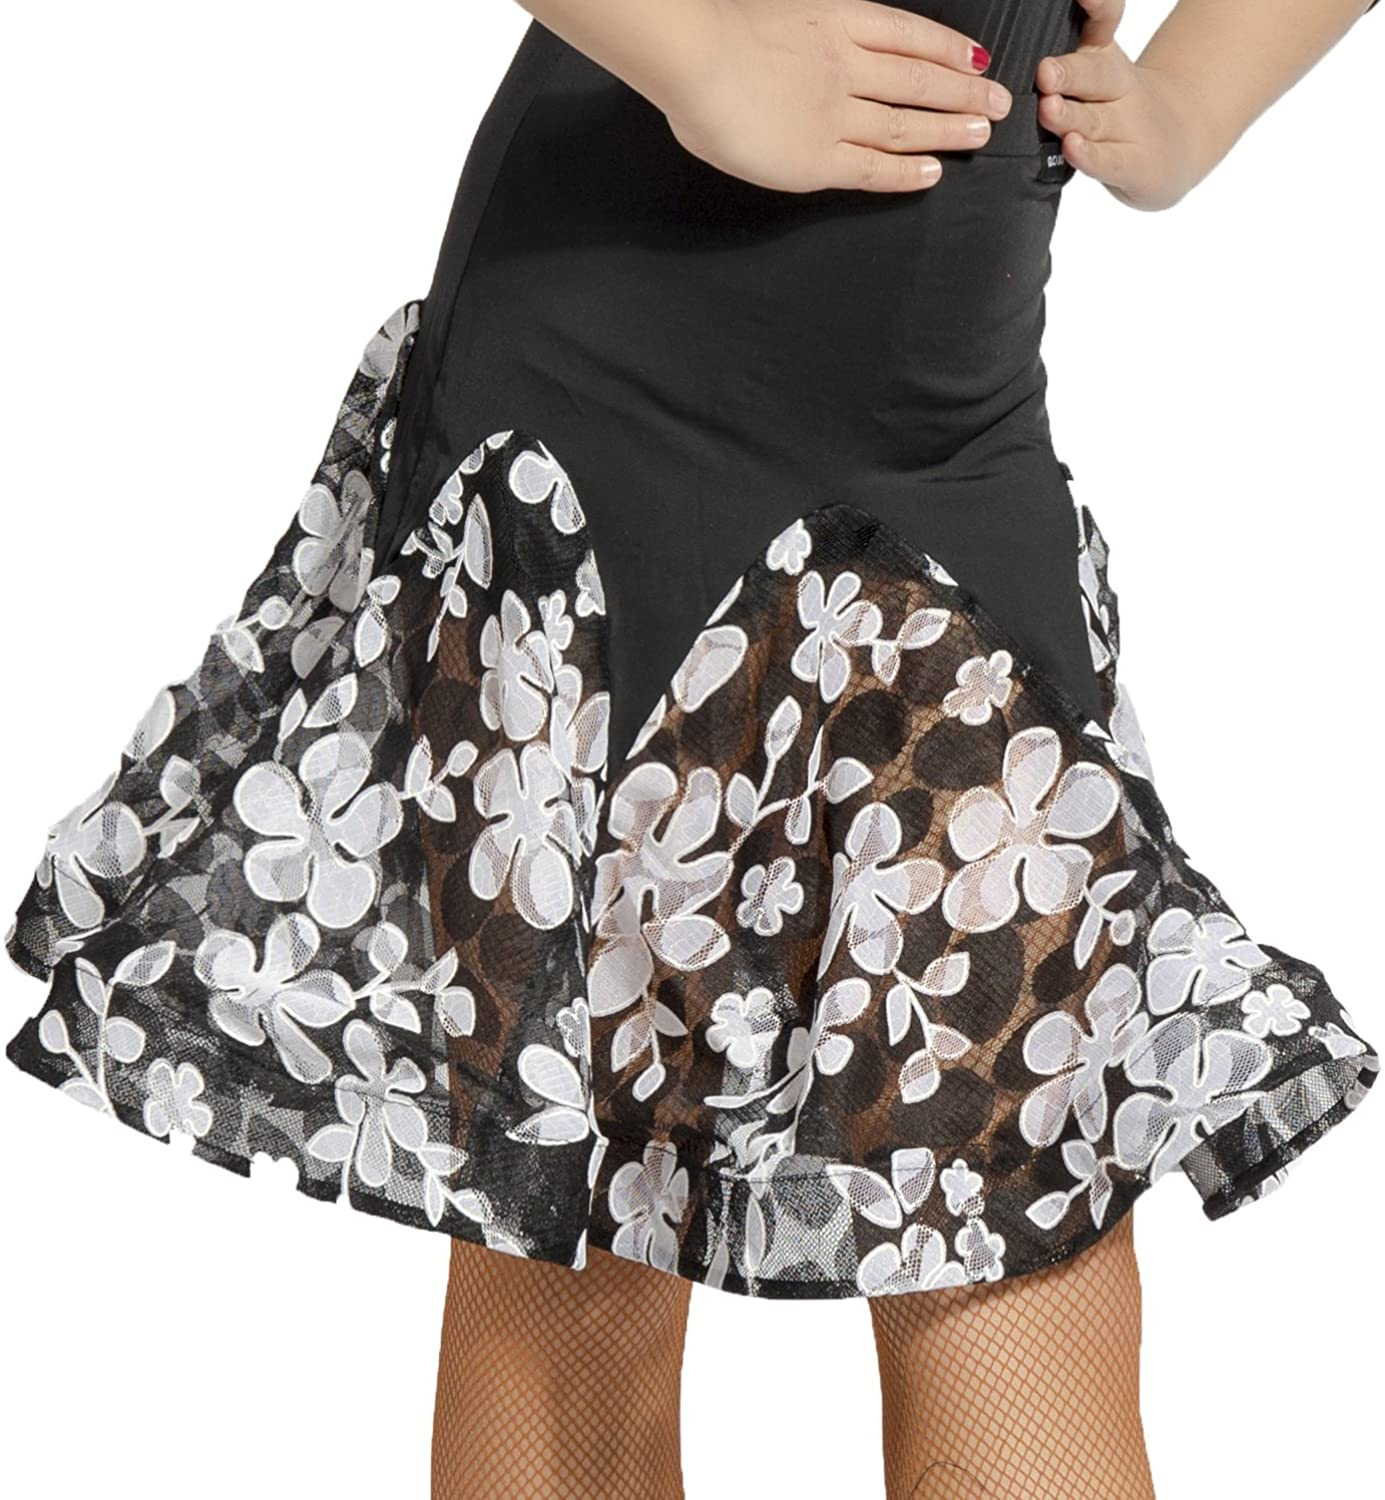 GD2042 Kid Latin Ballroom Ball Party Dance Professional lace Flower Stitching Design Skirt for Girl